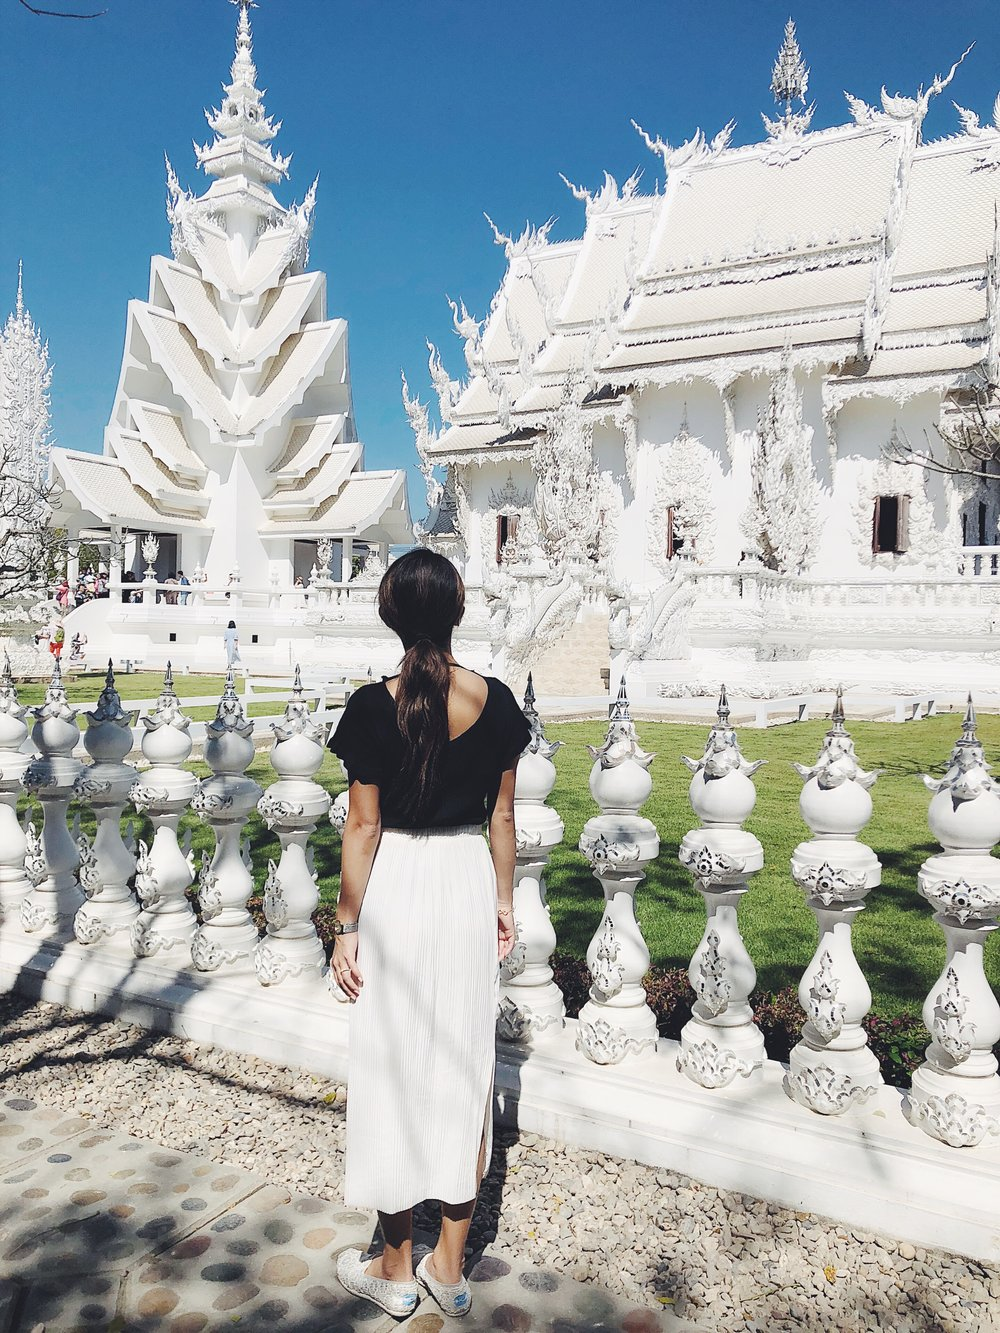 Location: White Temple in Chiang Rai, Thailand | Wearing: Aritzia skirt, Toms shoes, blouse from a local brand